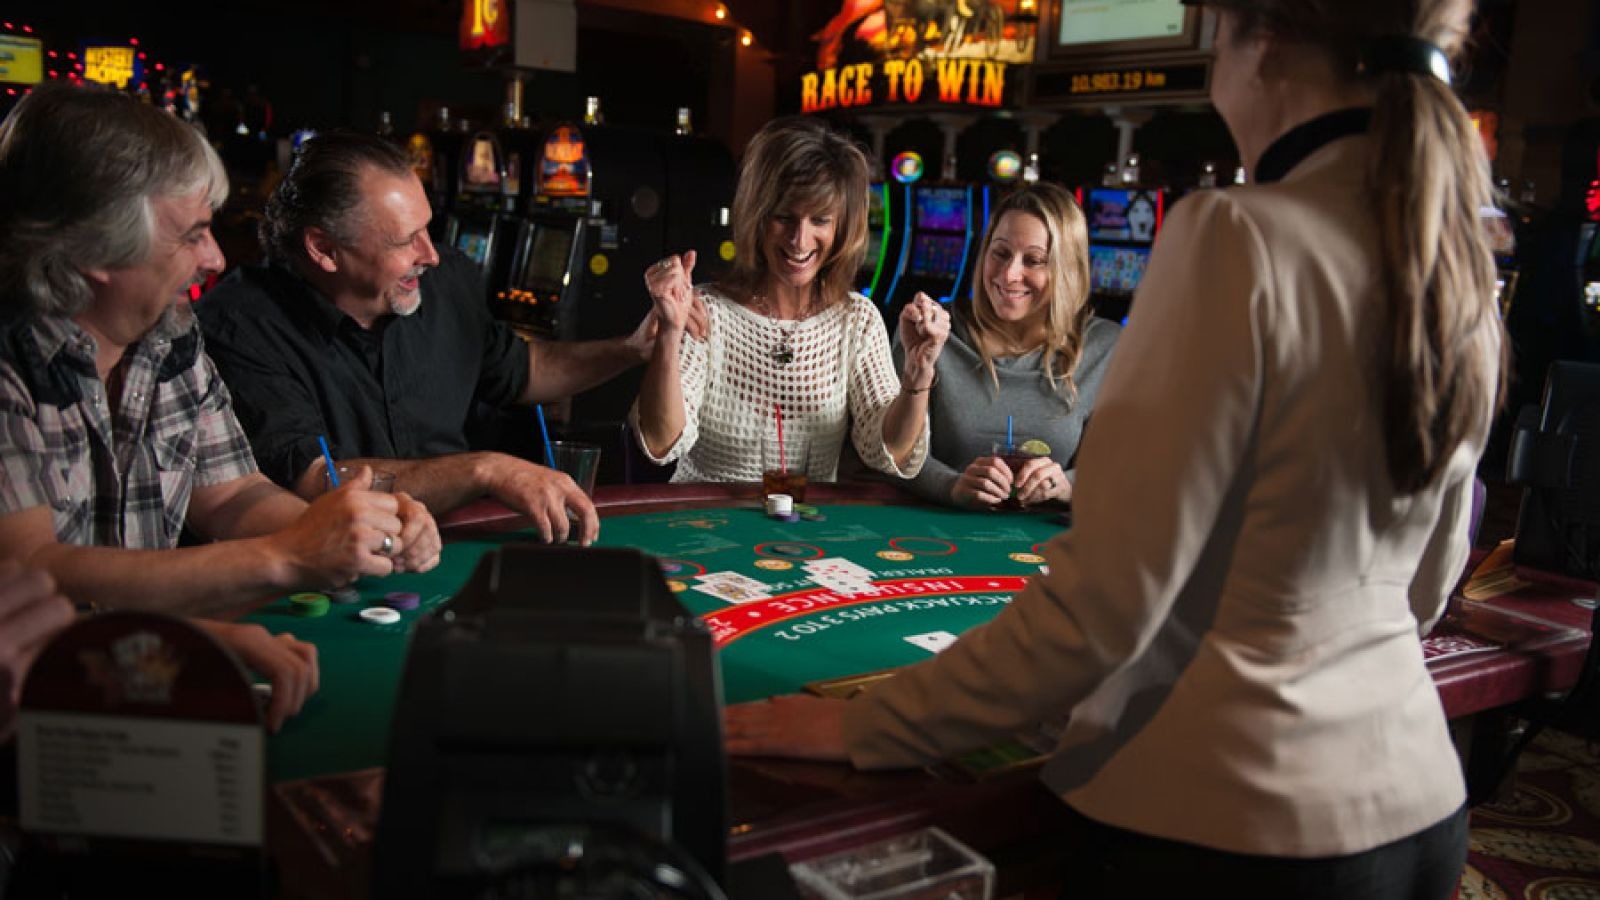 Stay and play at the Casino of the Rockies.